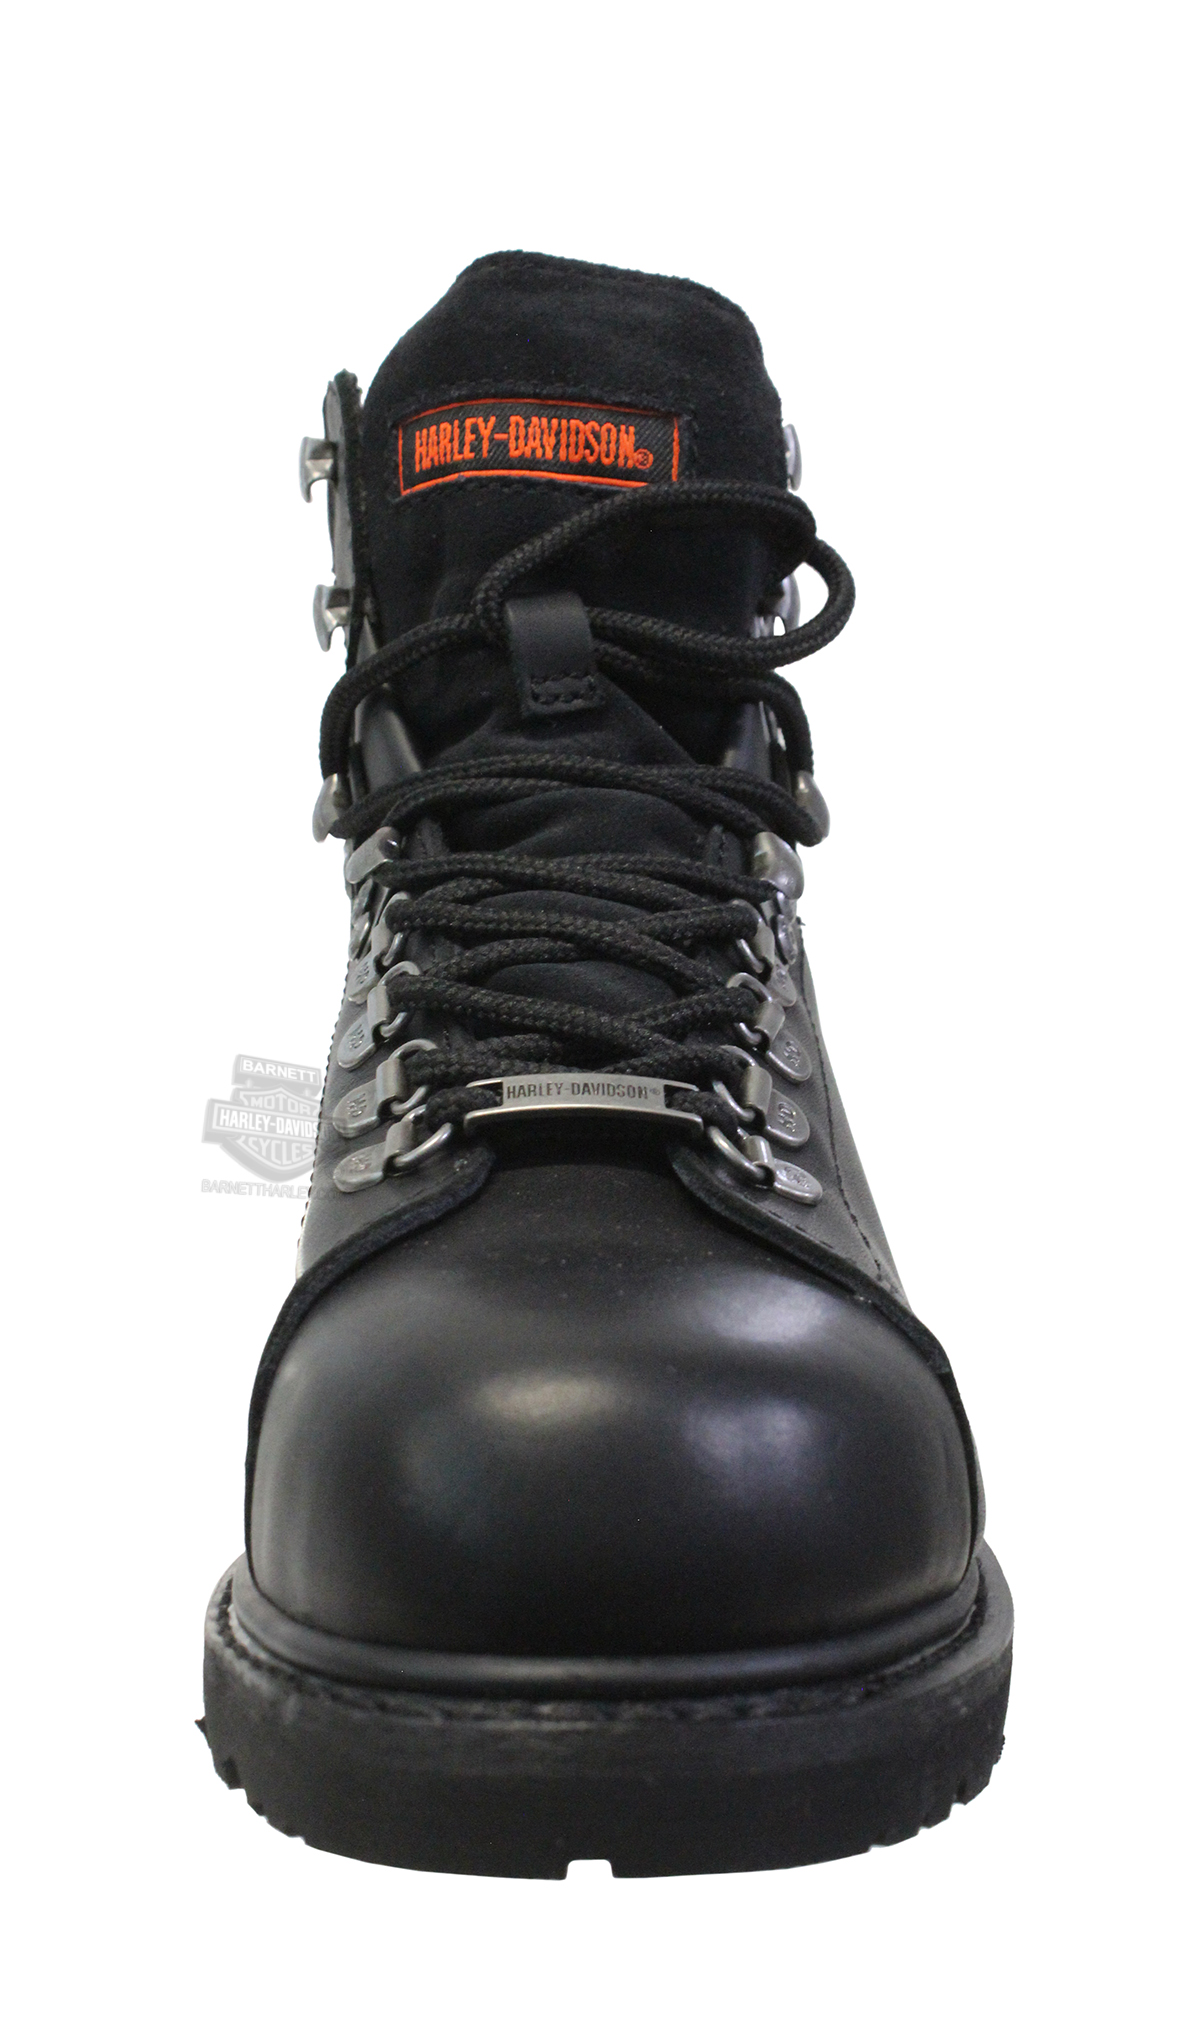 b3d60f67ef4 91630 - Harley-Davidson® Mens Steel Toe Dipstick Black Low Cut Boot ...